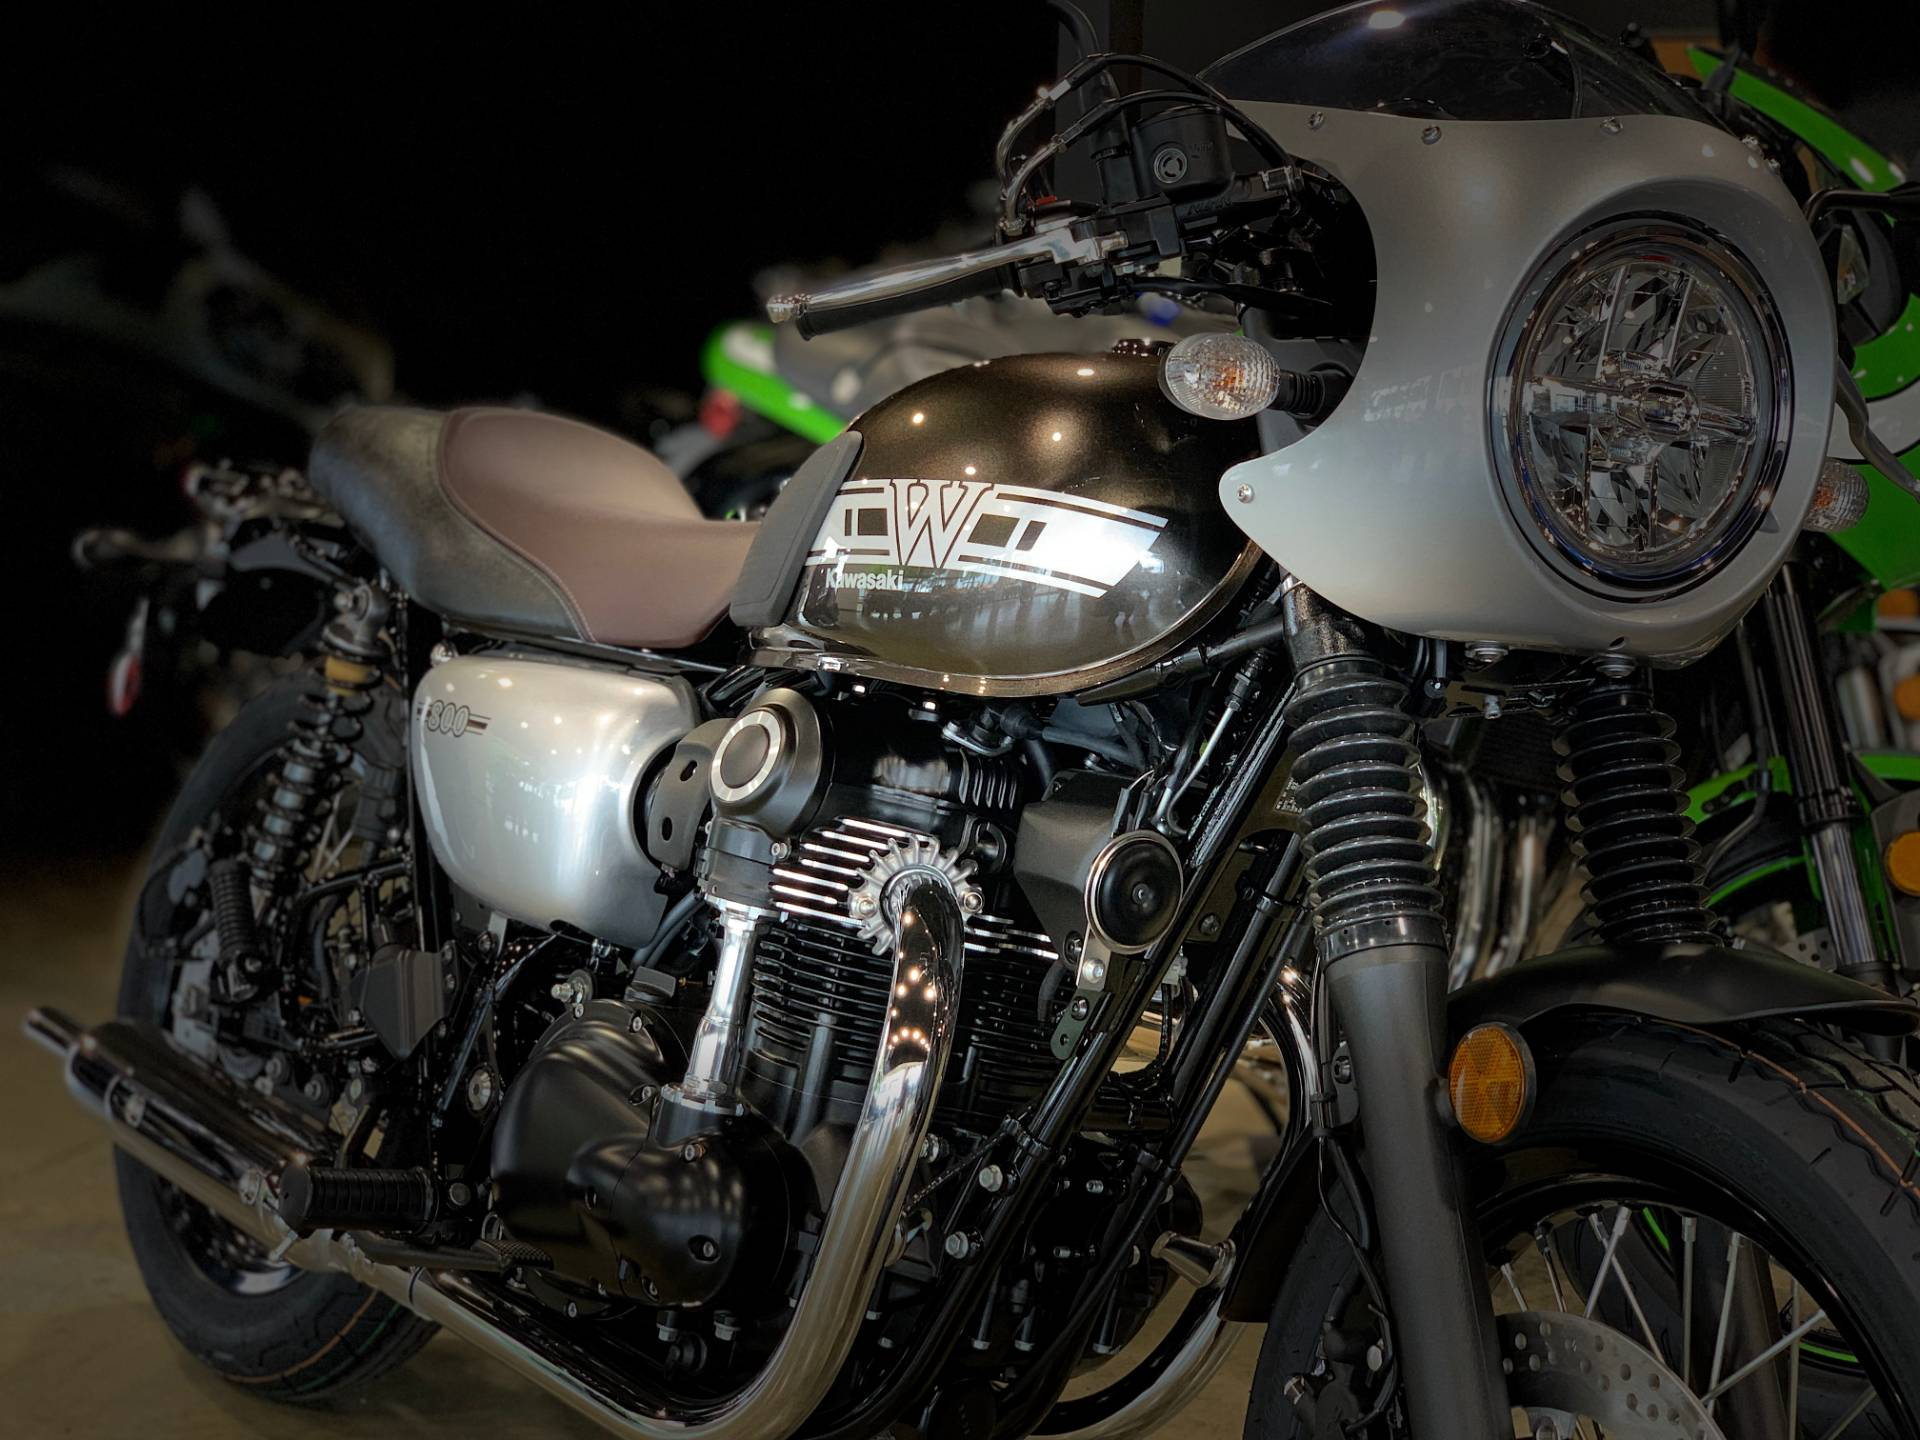 2019 Kawasaki W800 CAFE in Plano, Texas - Photo 1